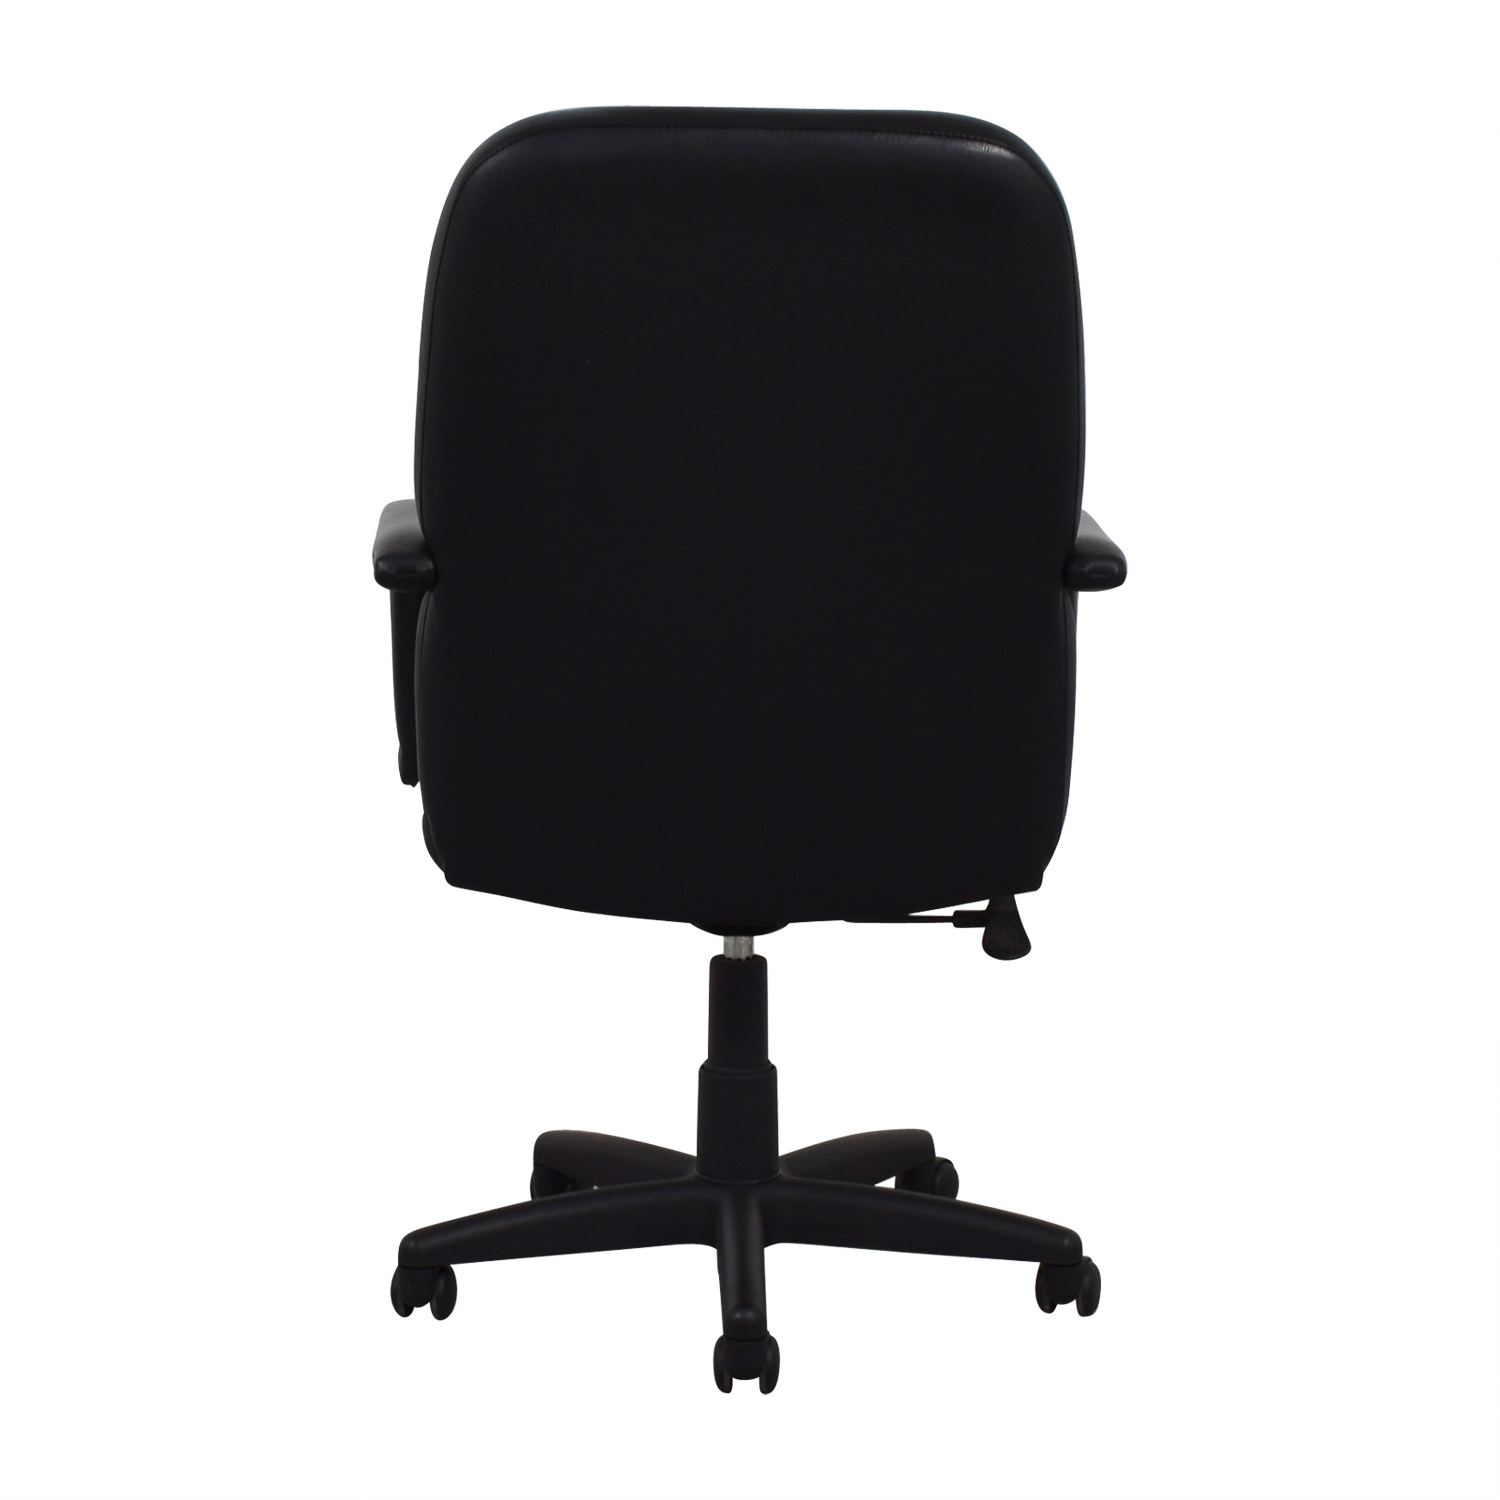 Raymour & Flanigan Black Office Chair sale